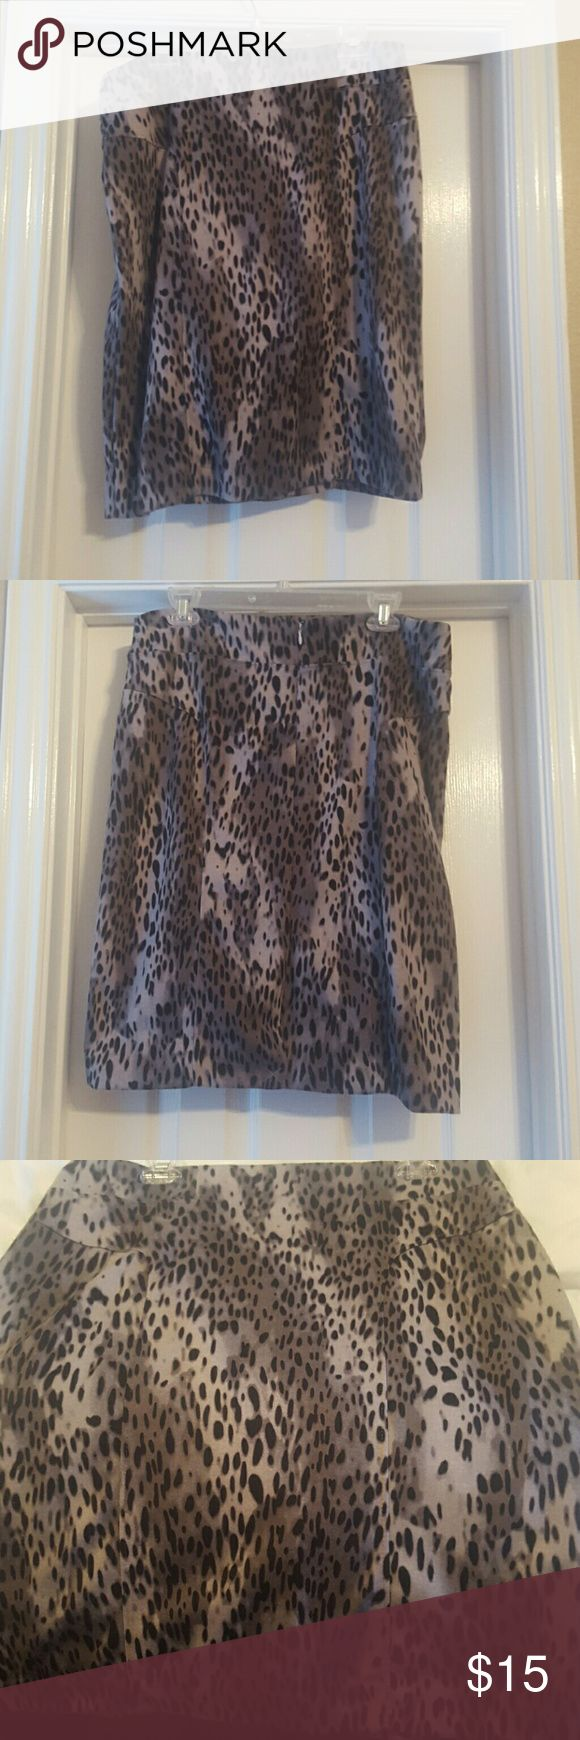 Great leopard pencil skirt Black/gray leopard print pencil skirt from New York & Co. Really nice ponte material allows plenty of stretch for a comfortable, flattering fit. Zips in the back.  Excellent condition. New York & Company Skirts Pencil